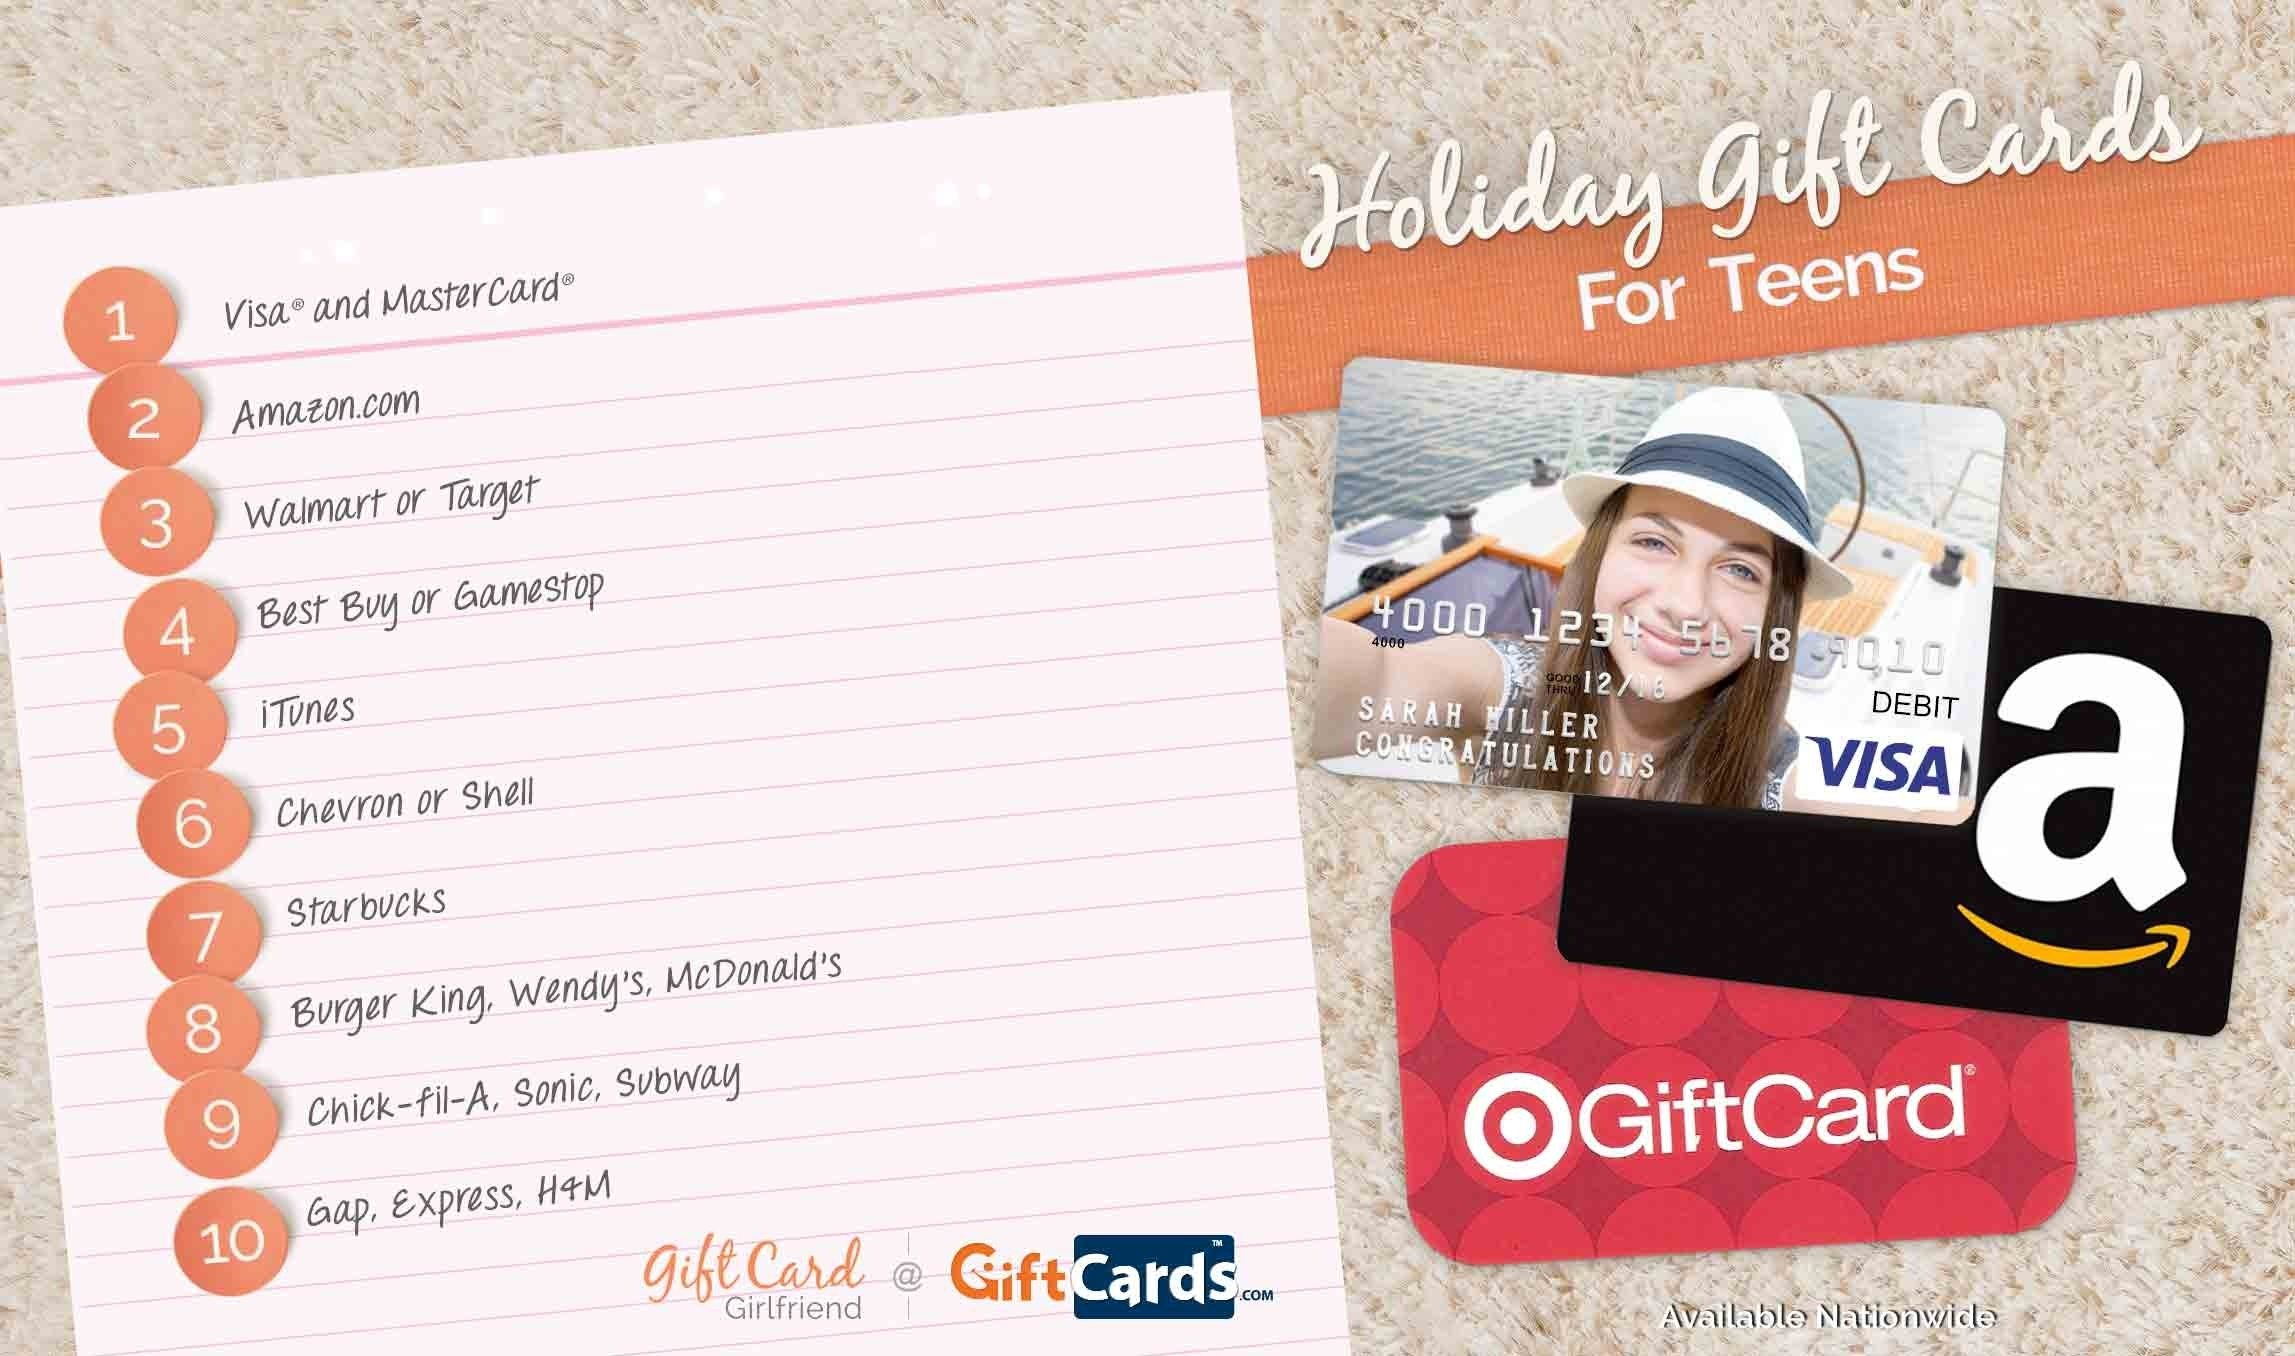 10 Stunning Gift Card Ideas For Couples top gift cards for teens gift card girlfriend 2021